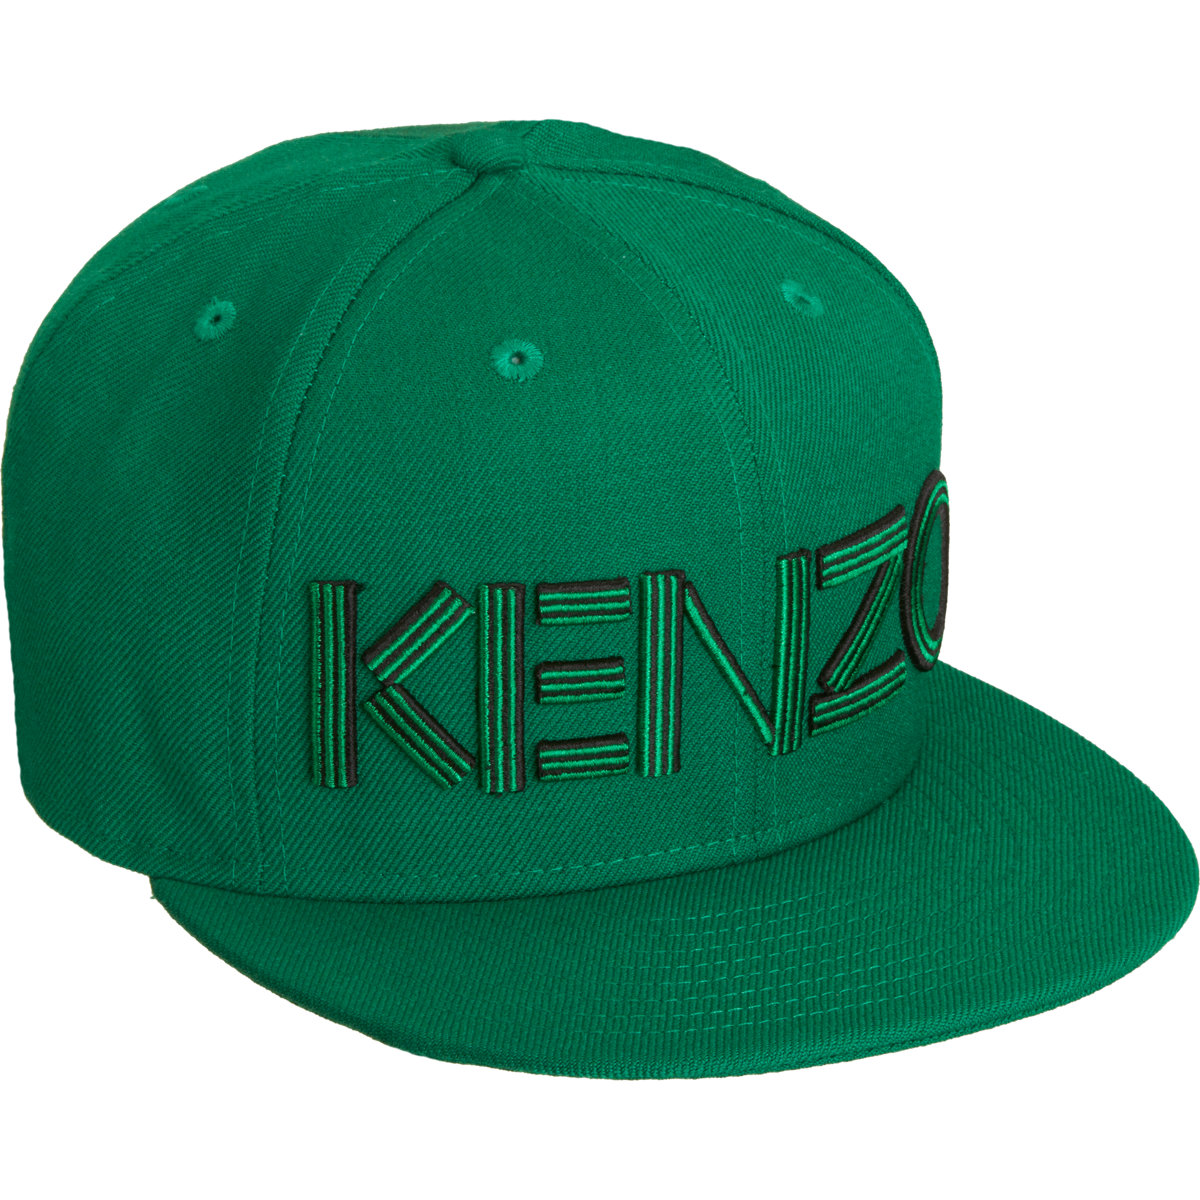 KENZO Embroidered Hat in Green for Men - Lyst 58f3a57578d